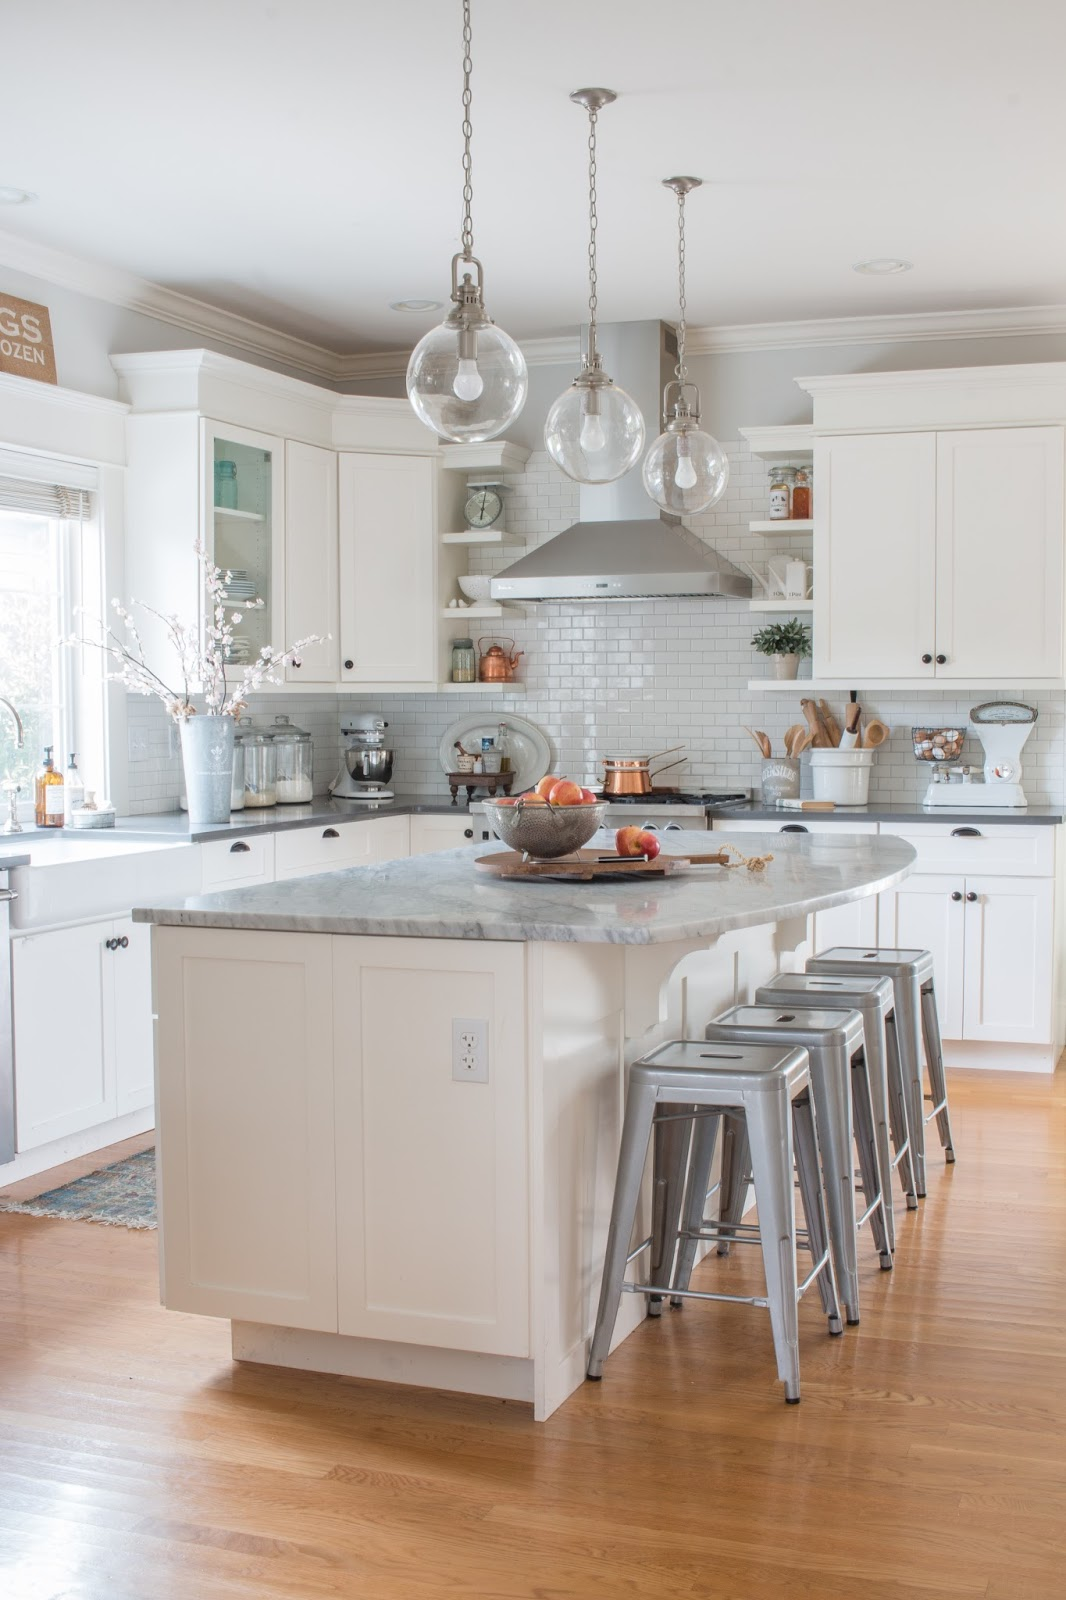 white kitchen cabinets, wood floor, and copper and farmhouse accents